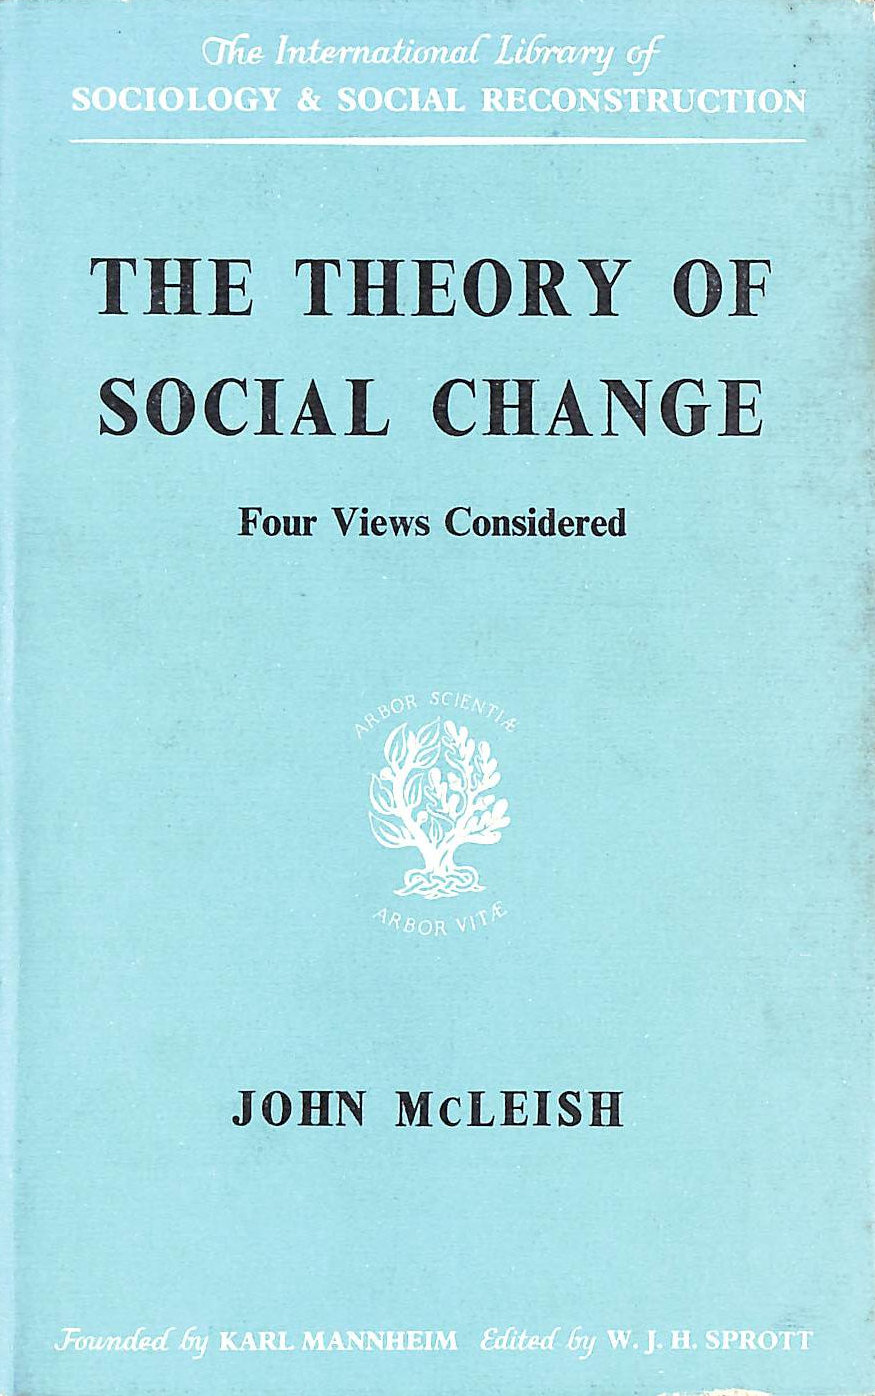 Image for The Theory of Social Change: Four Views Considered (International Library of Sociology and Social Reconstruction)